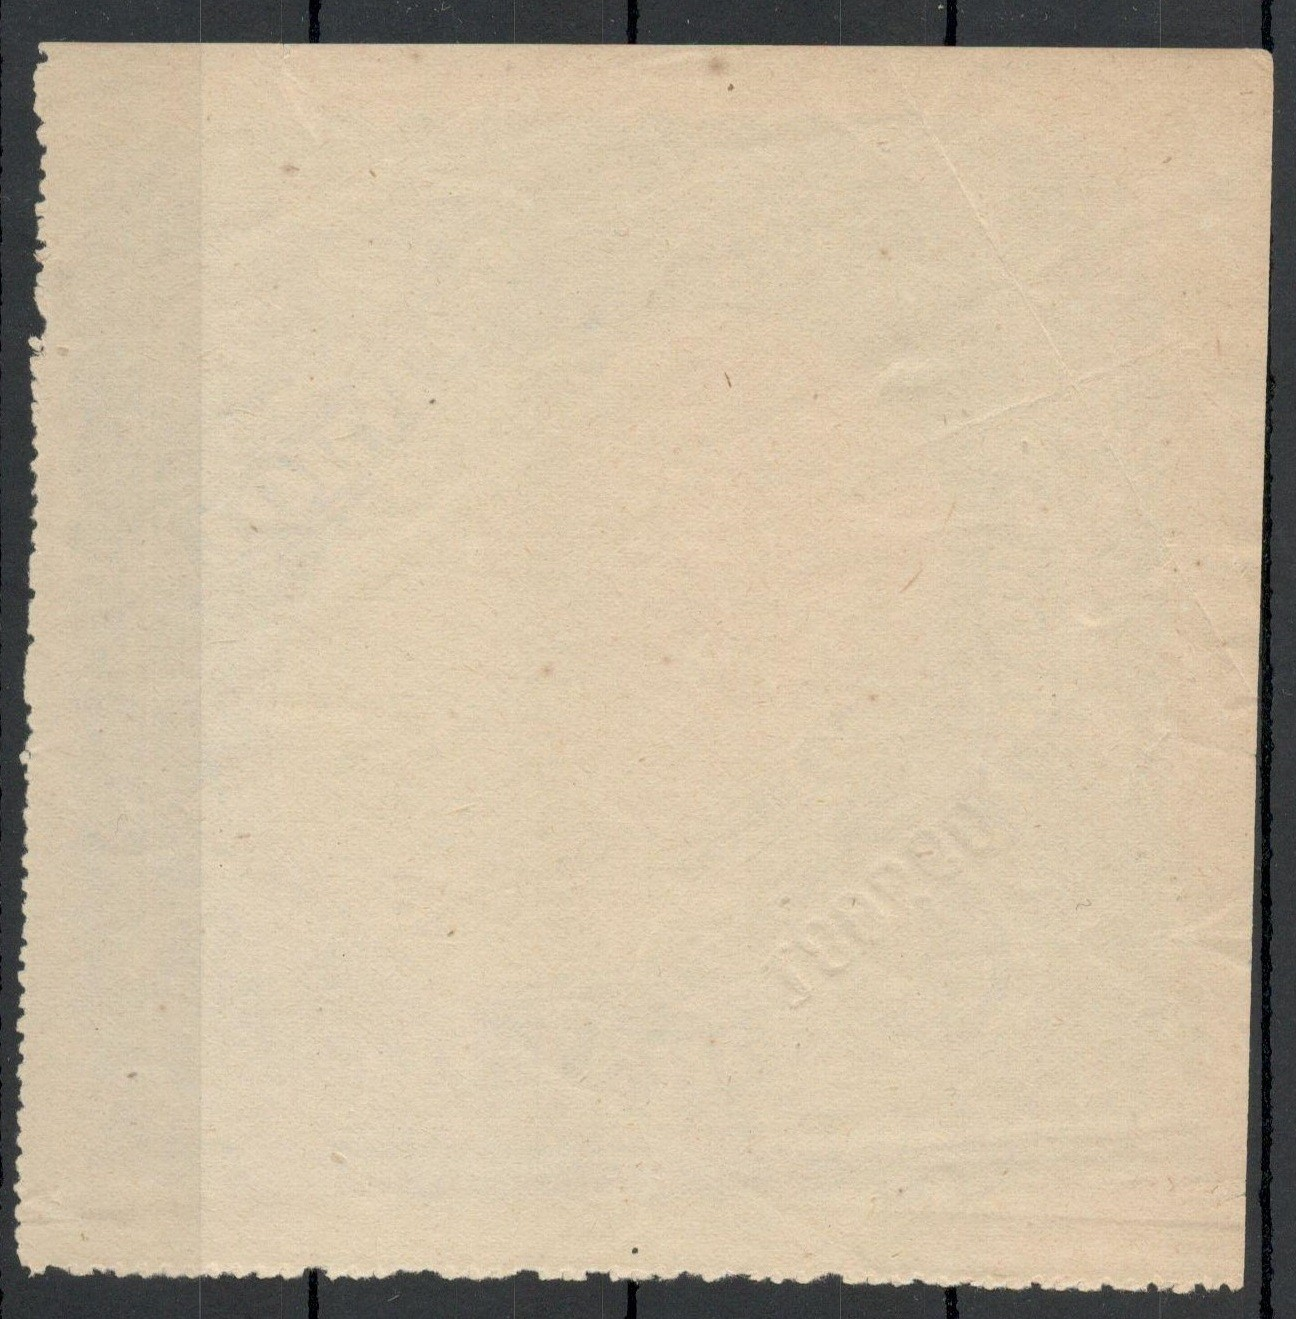 CANADA CUSTOMS TOBACCO ENTRY LABEL - Image 3 of 4